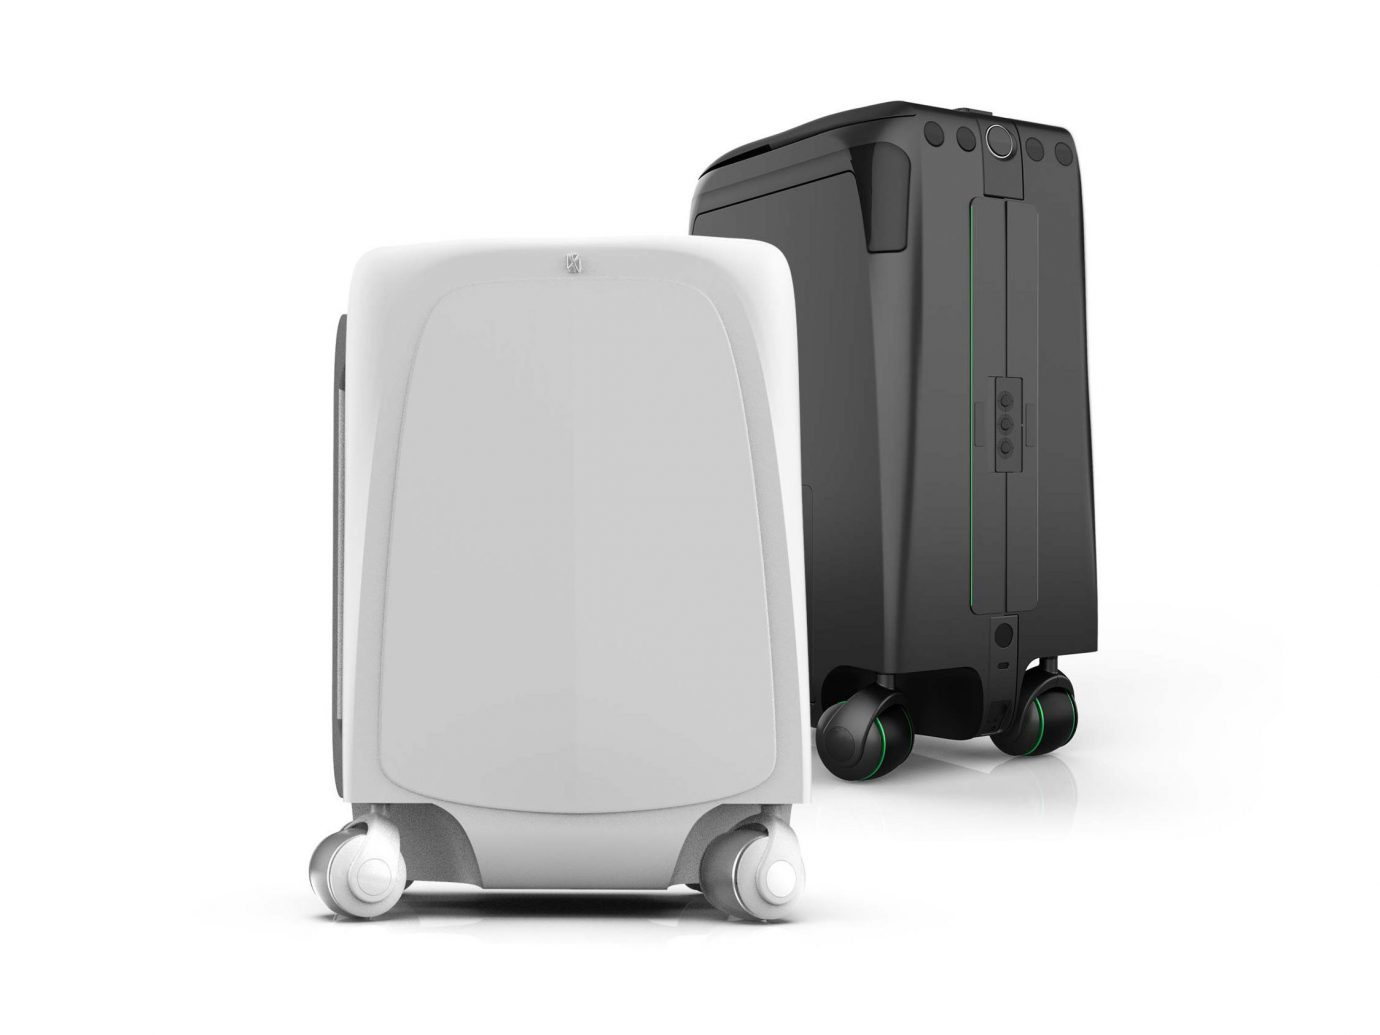 News Travel Shop Travel Tech product suitcase product design kitchen appliance